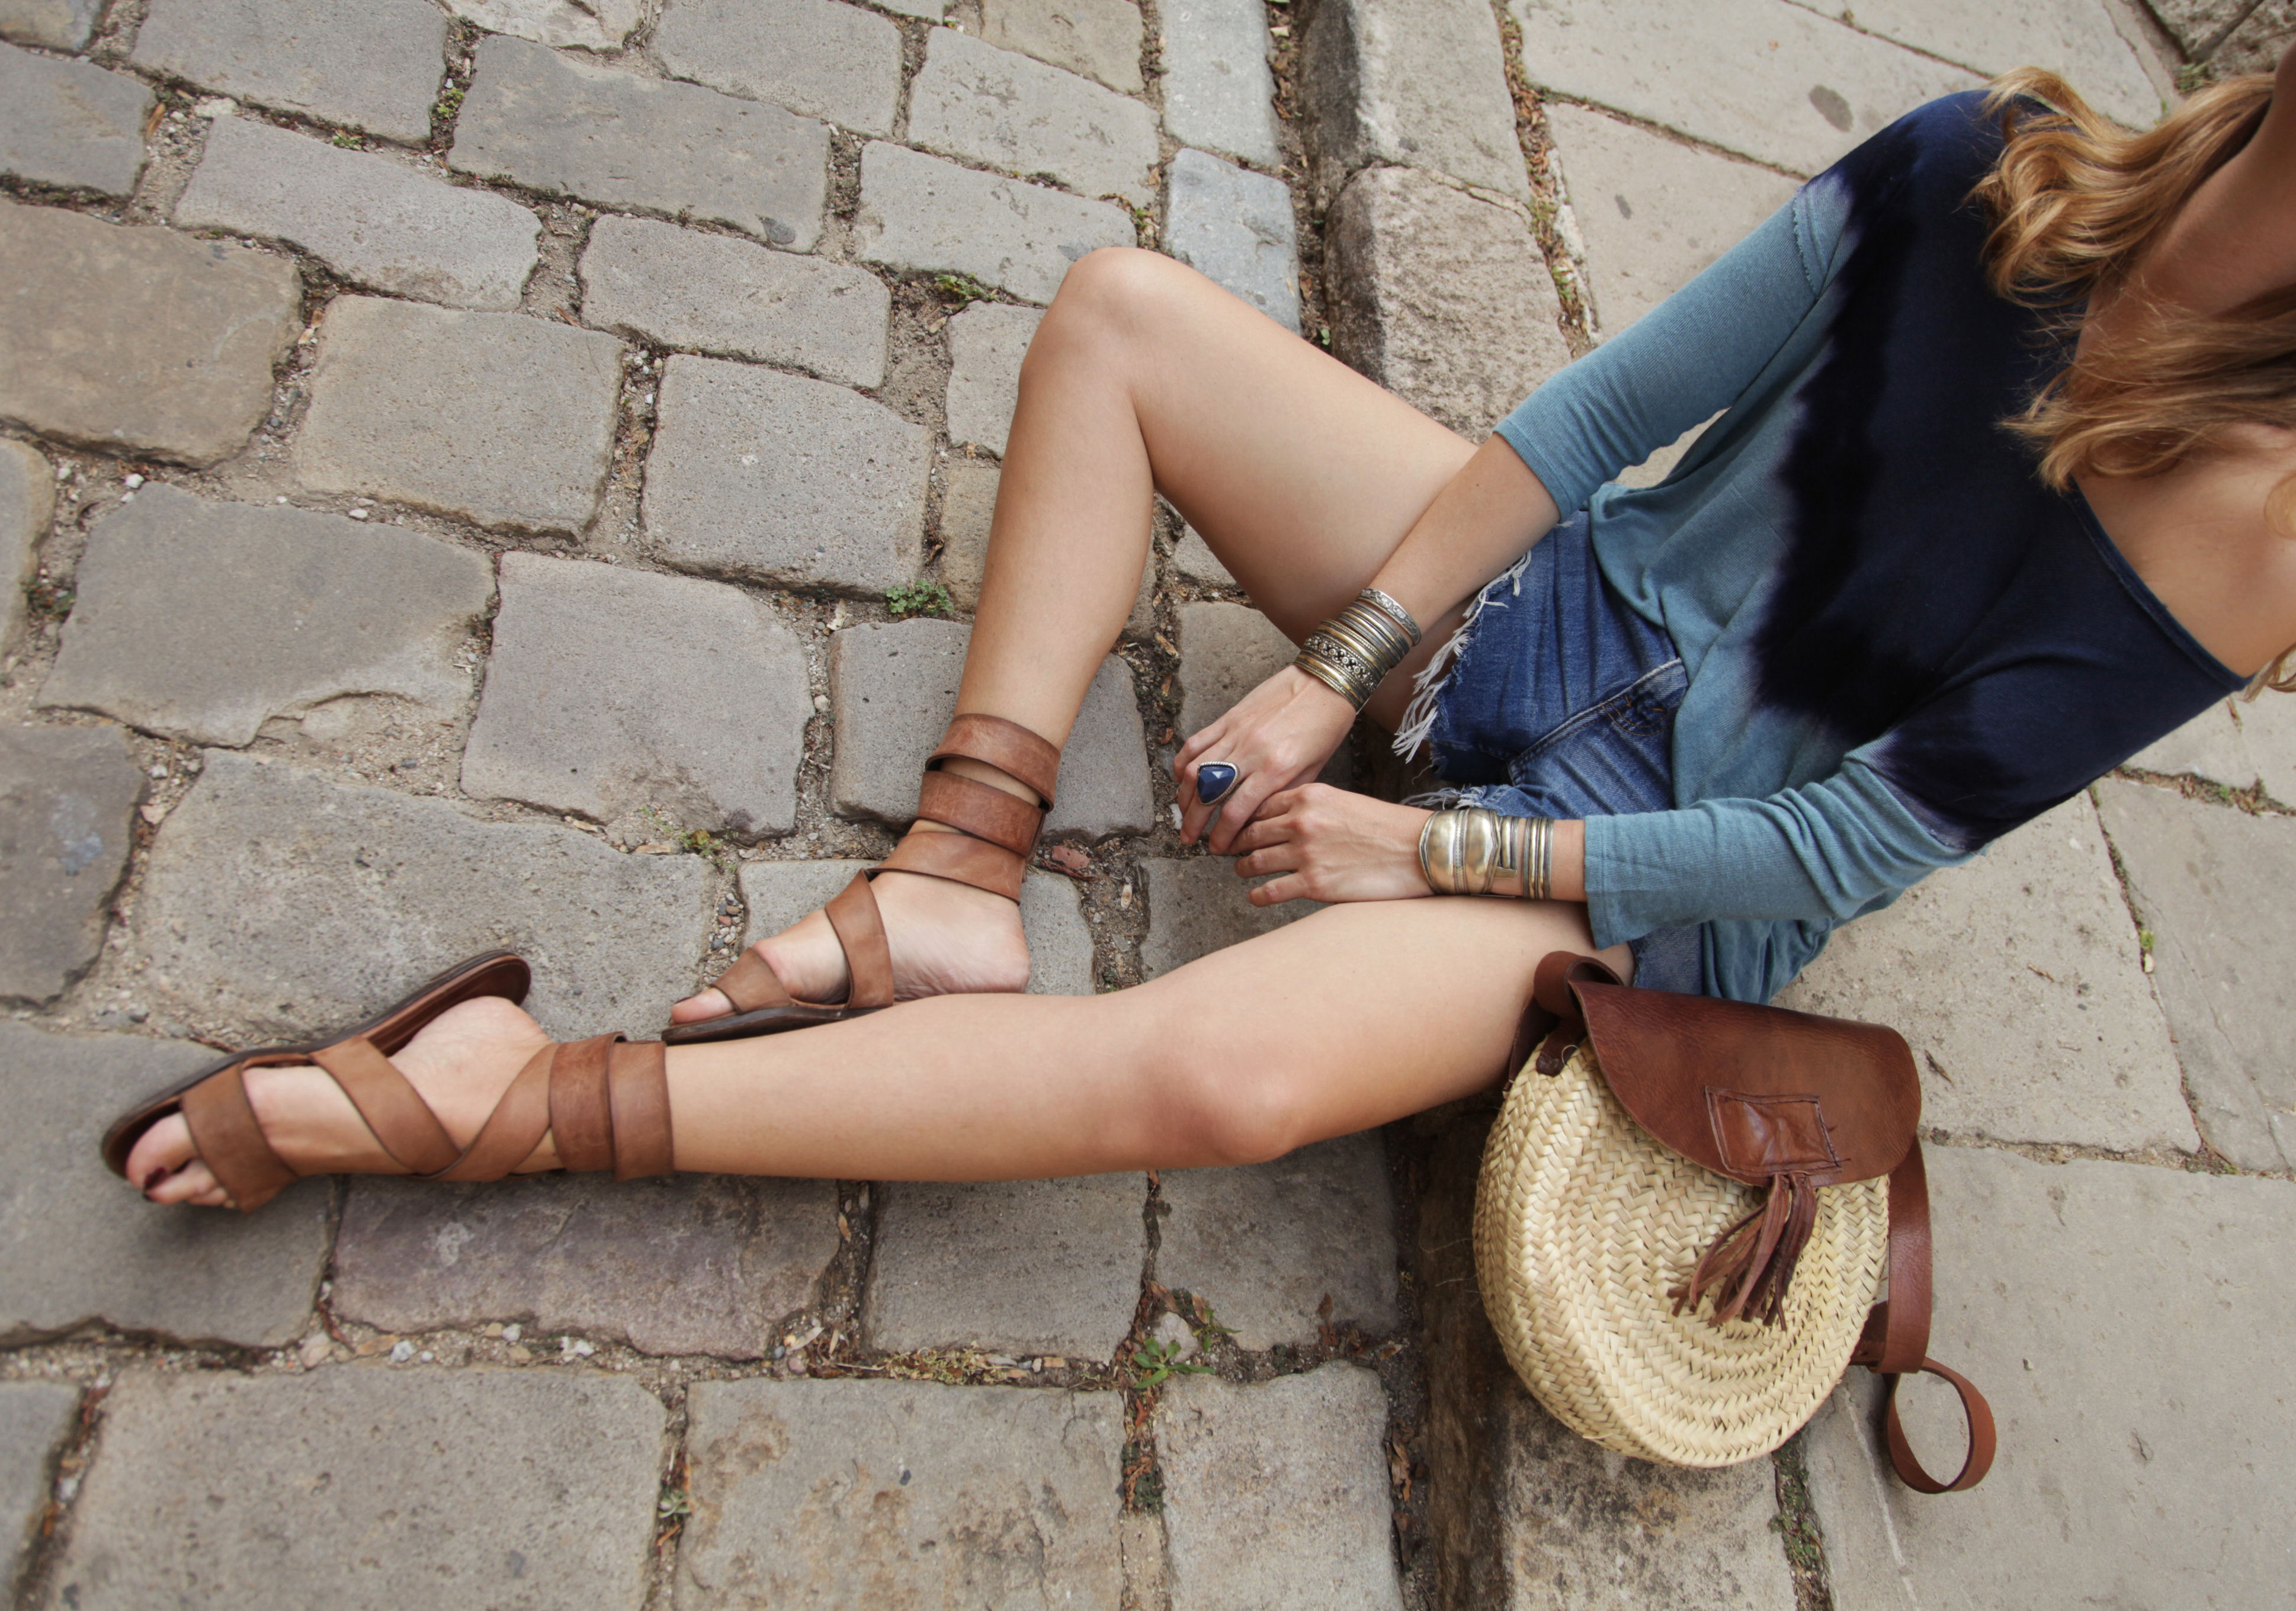 WE THE FREE-63891-mydailystyle